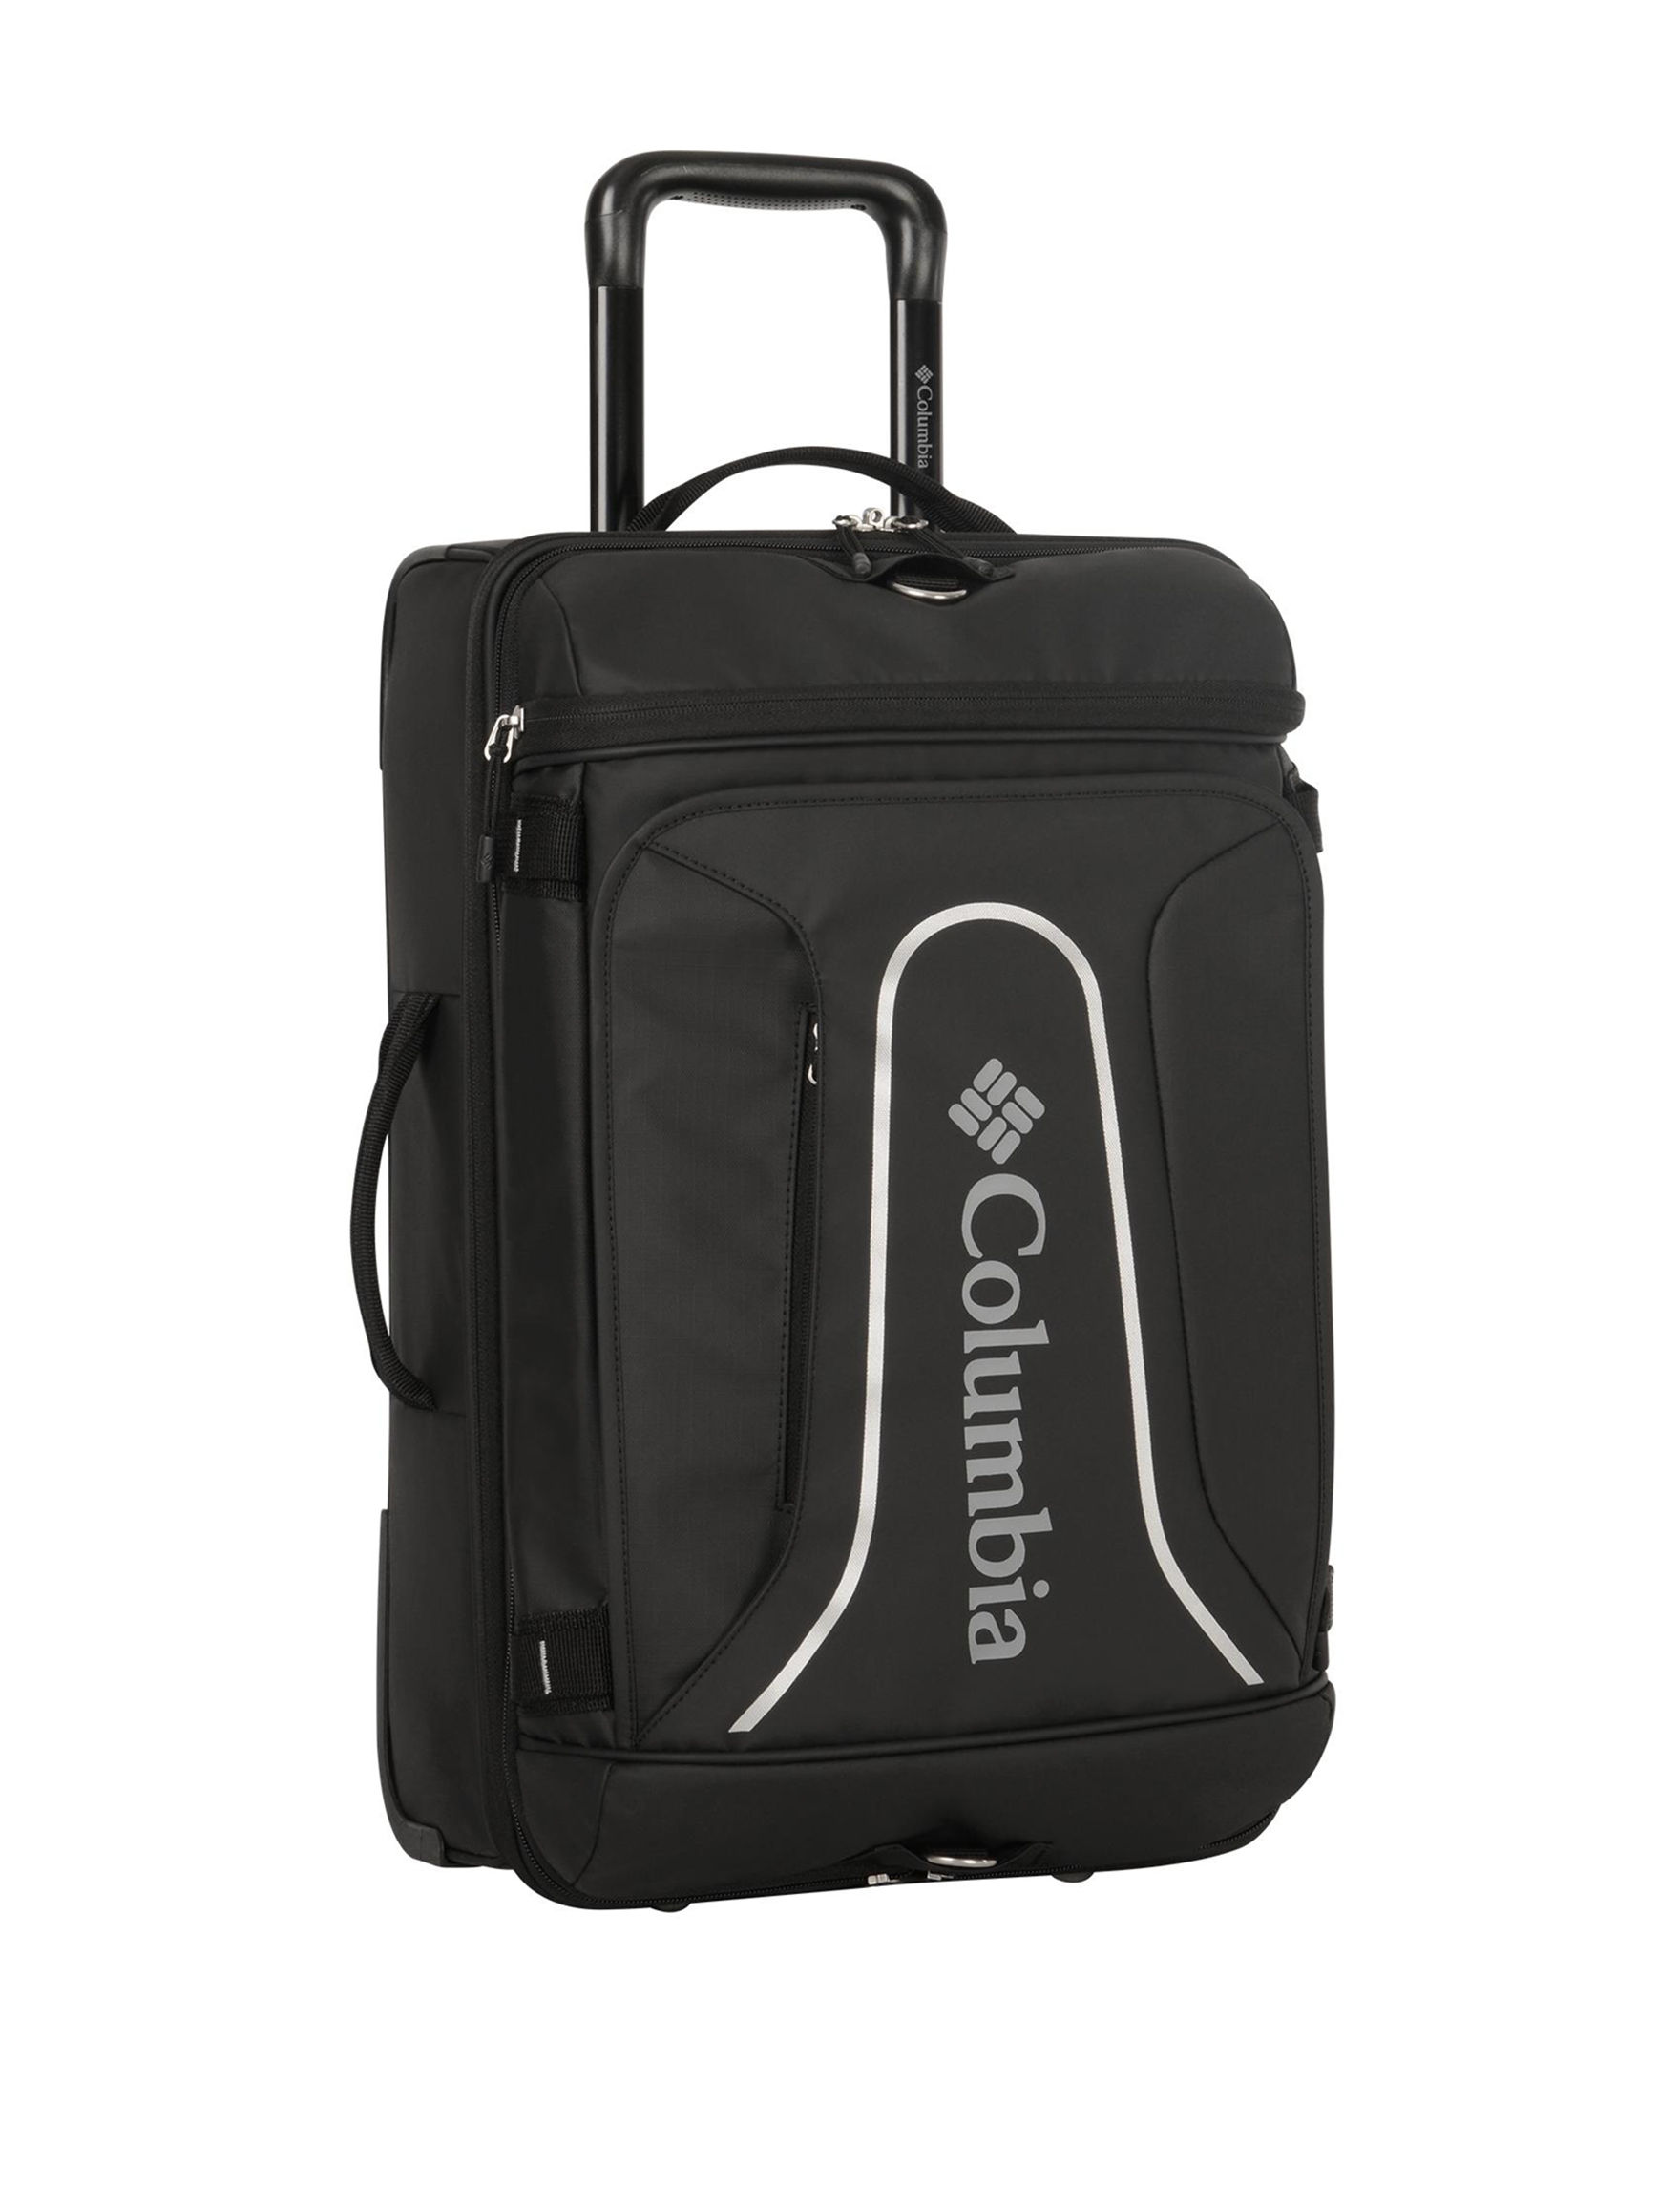 Columbia Black Carry On Luggage